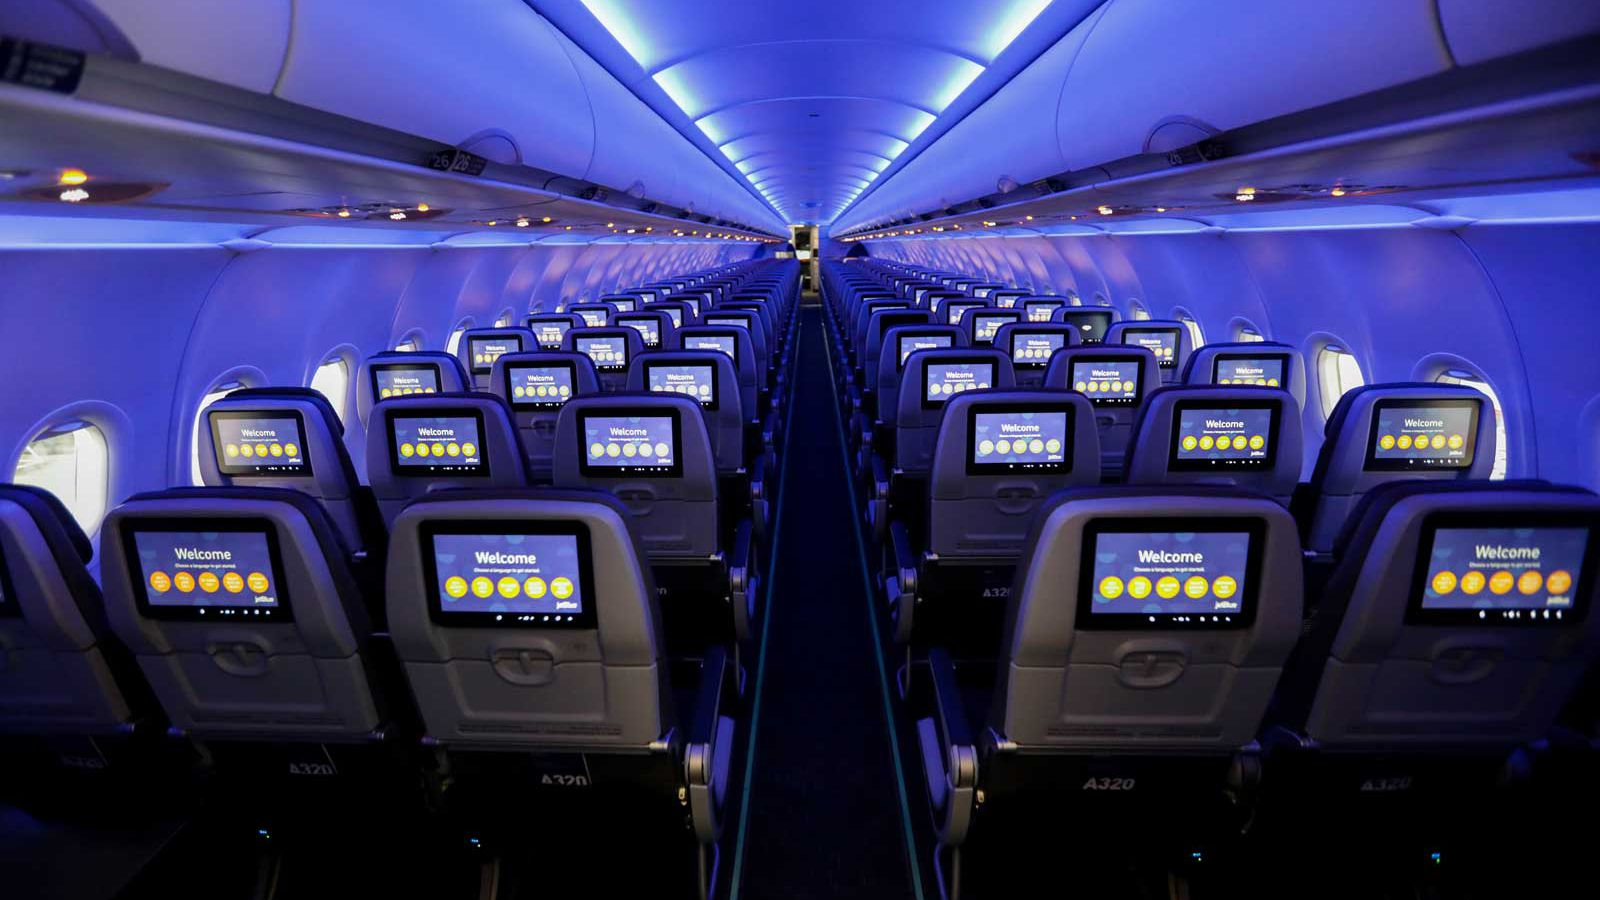 Interior of redesigned JetBlue airplane